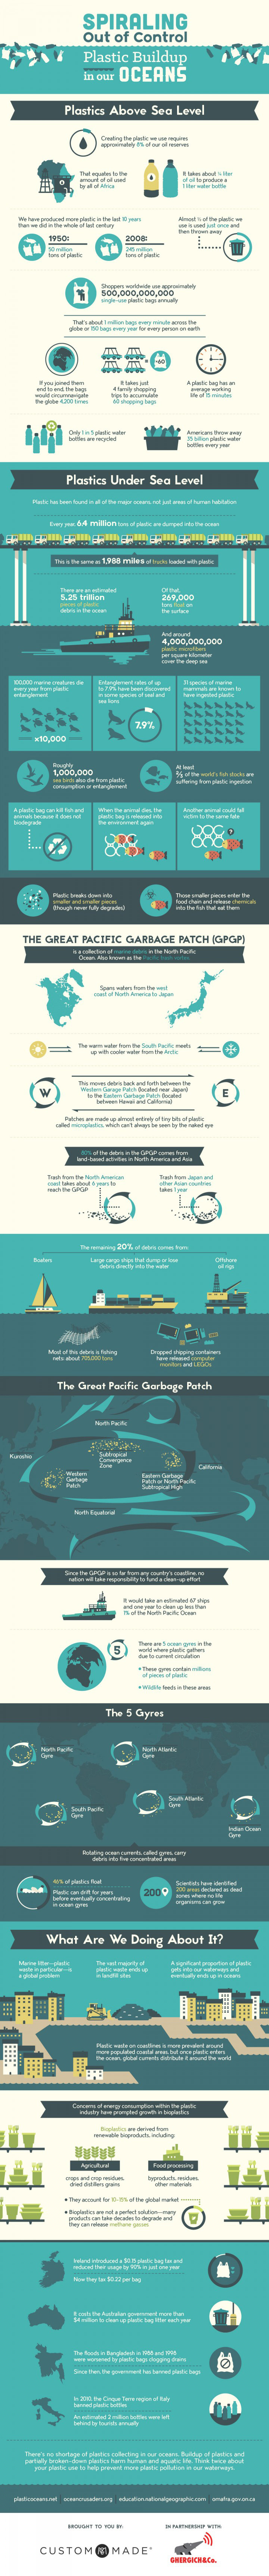 plastic pollution in our oceans infographic